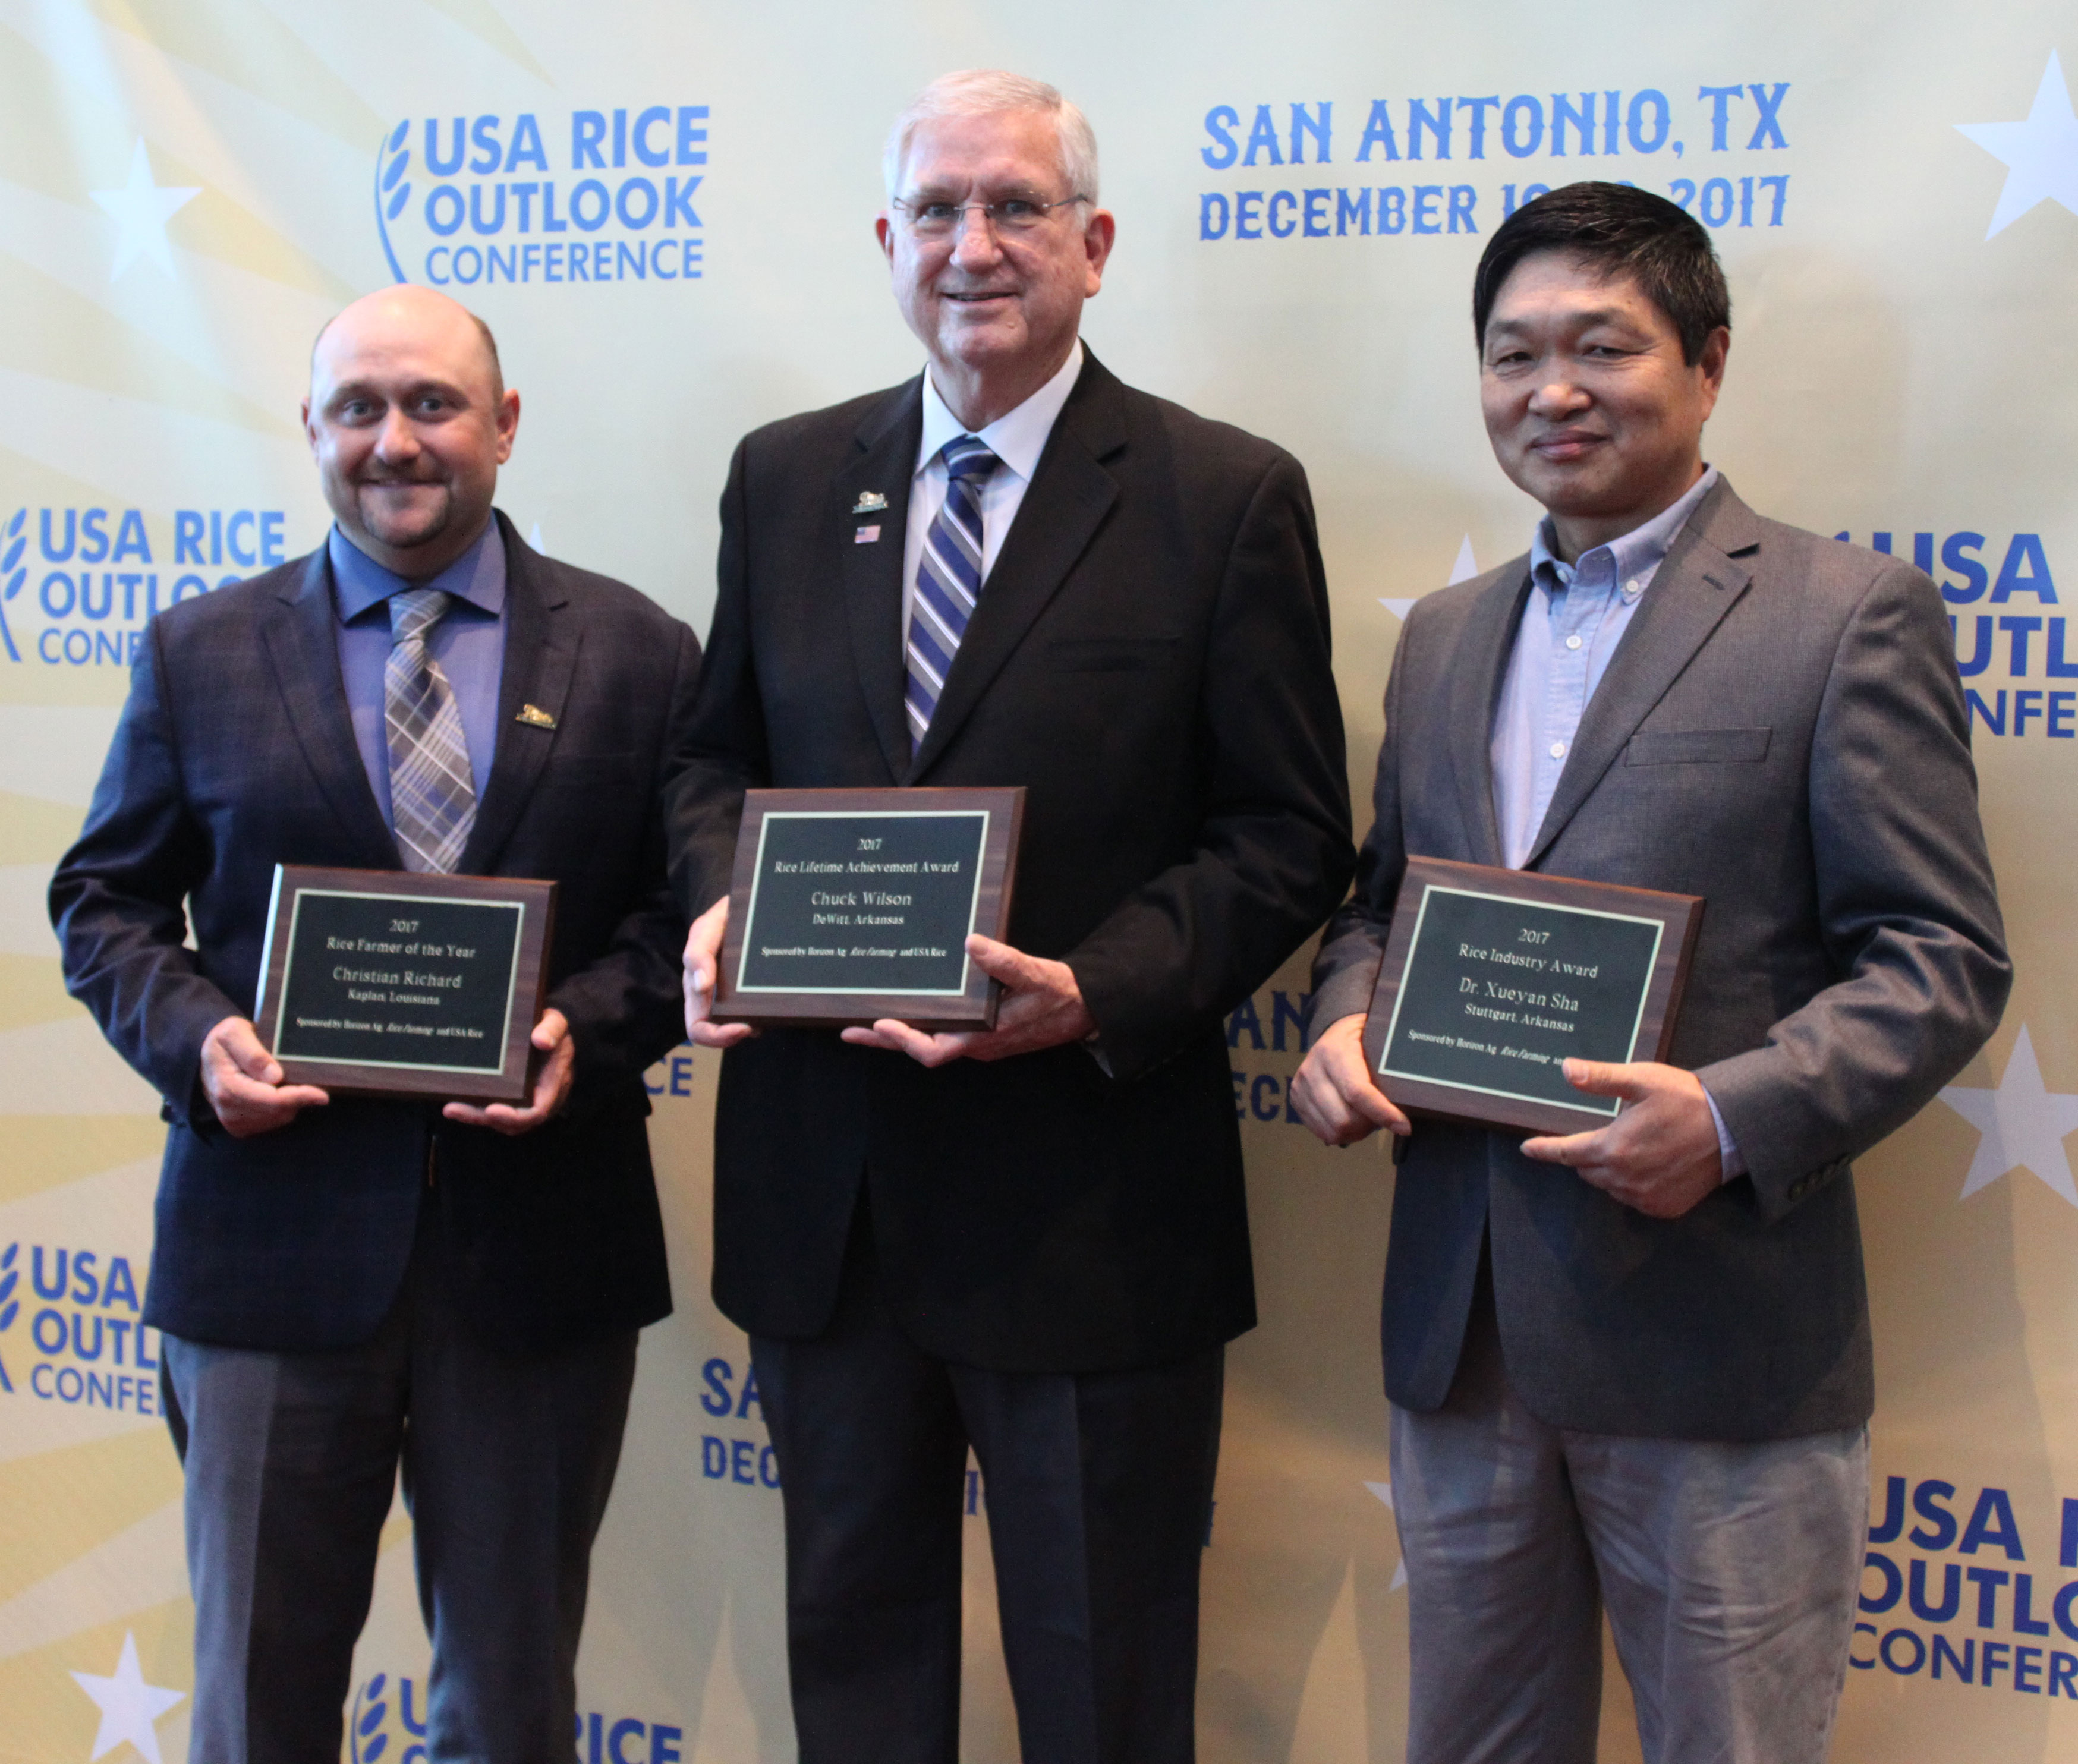 2017 Rice-Awards recipients holding plaques, standing in front of Outlook step-and-repeat